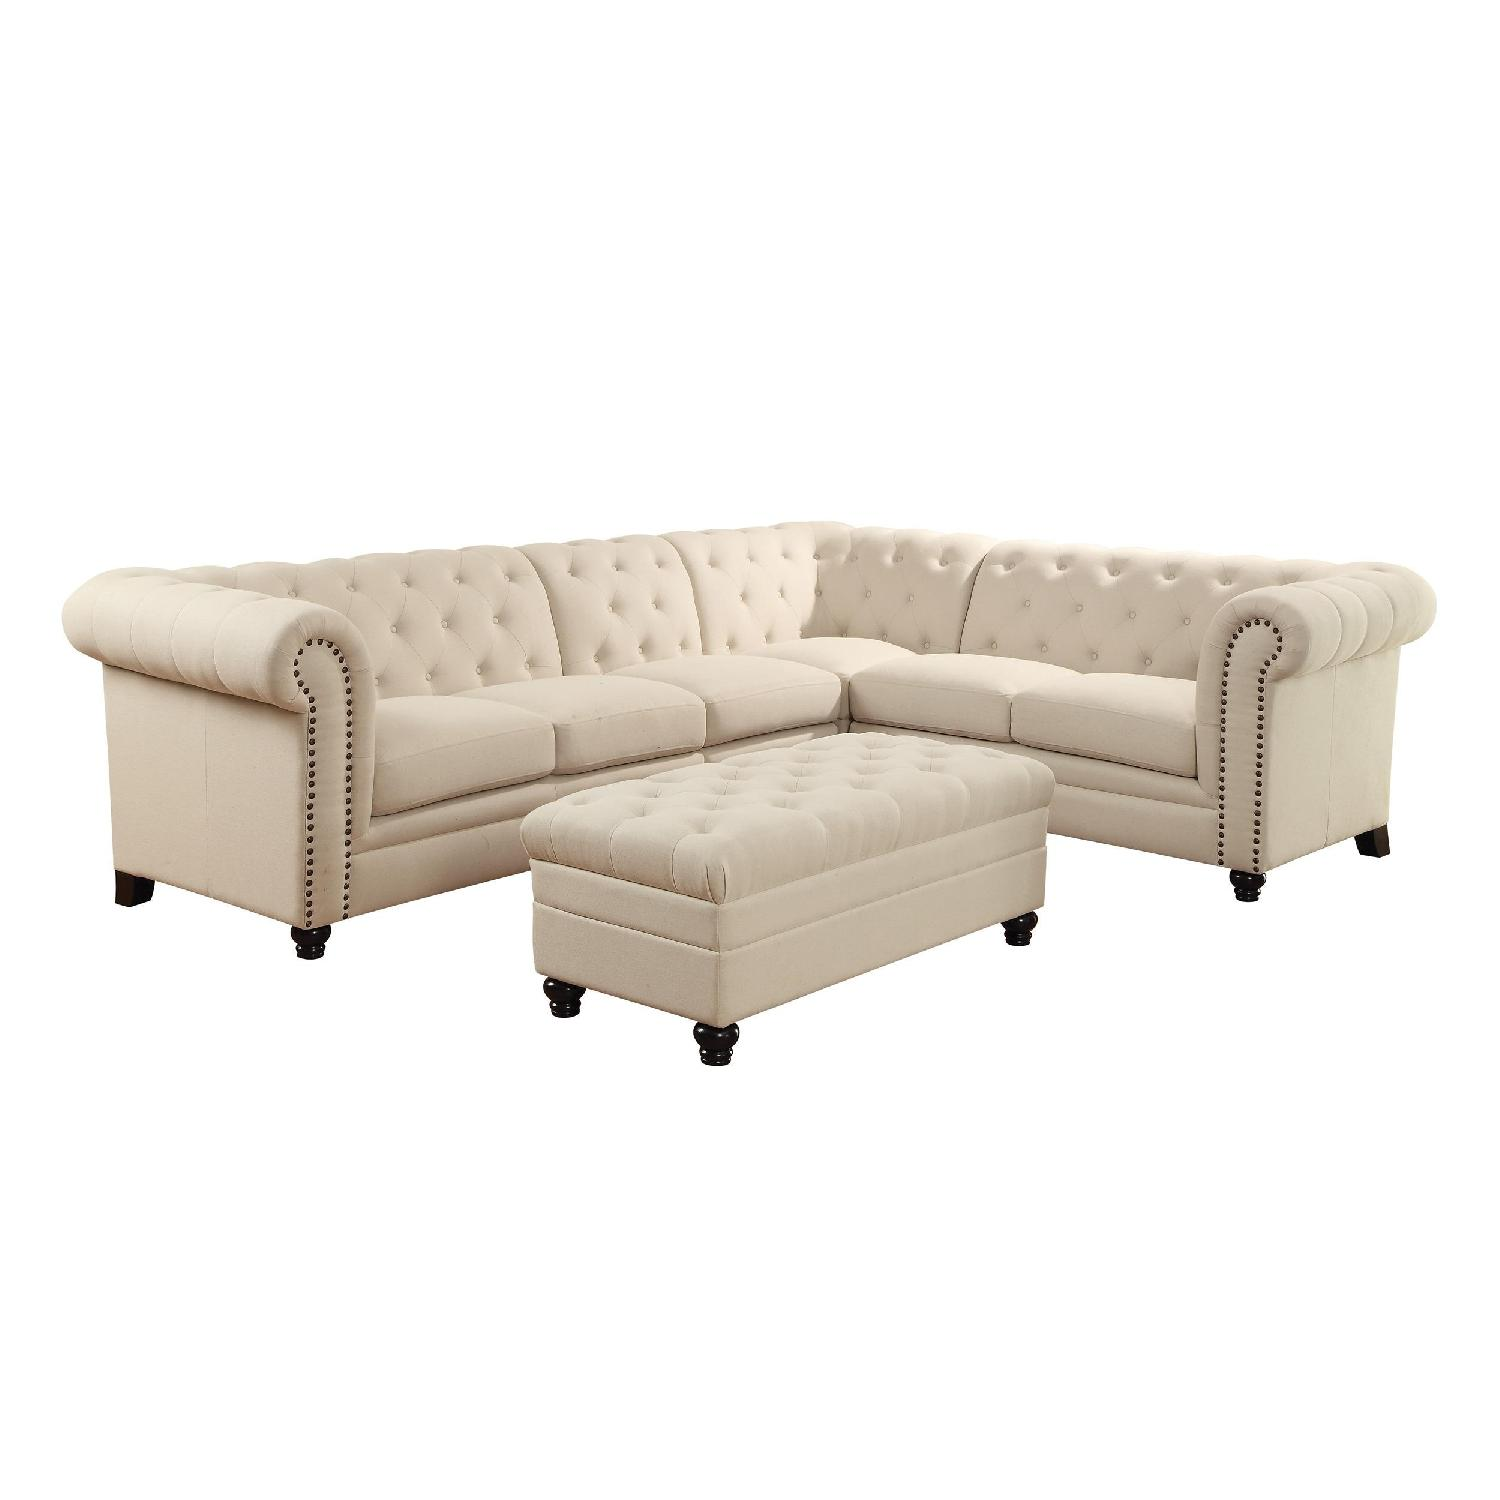 Chesterfield Style Sectional Sofa in Oatmeal Linen Blend Fabric w/ Feather Down Filled Cushions